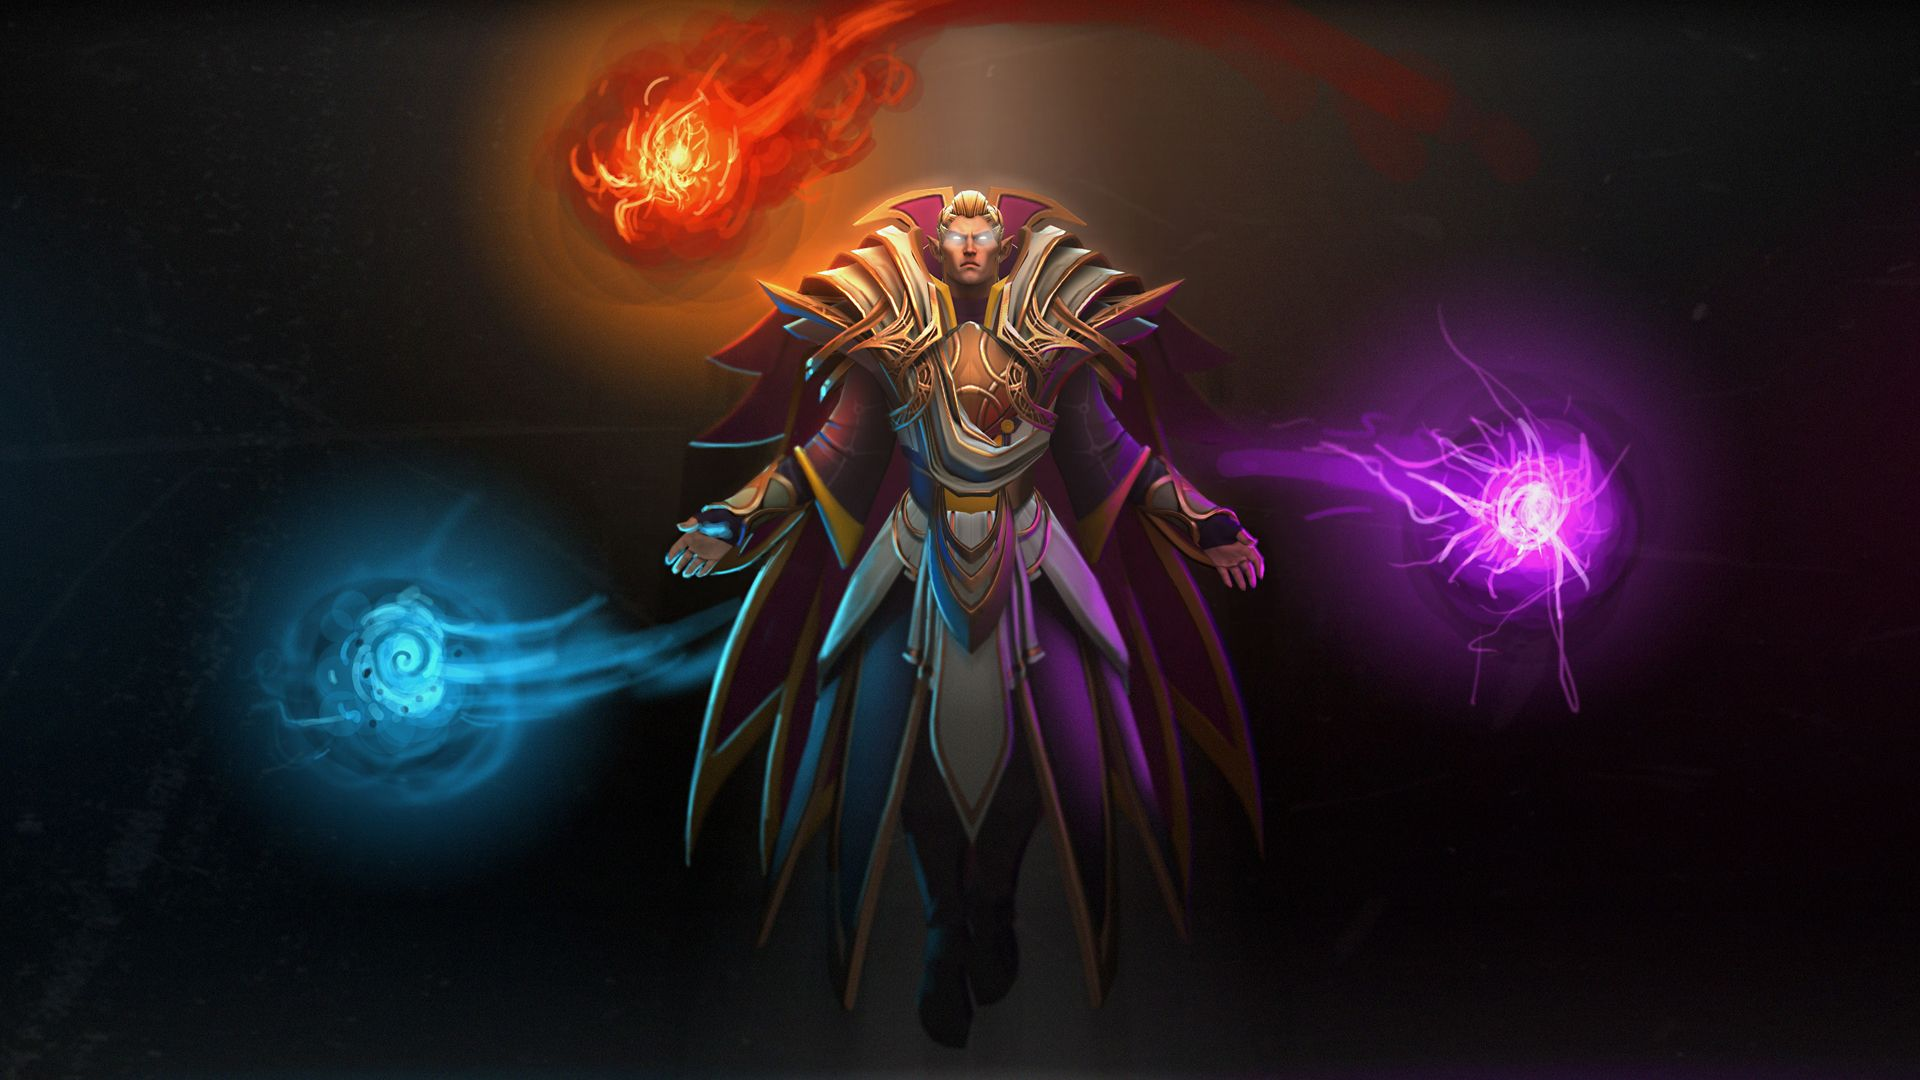 Invoker Dota 2 Wallpaper HD Game Online Images | Tattoo ideas in 2019 | Dota 2 wallpapers hd ...